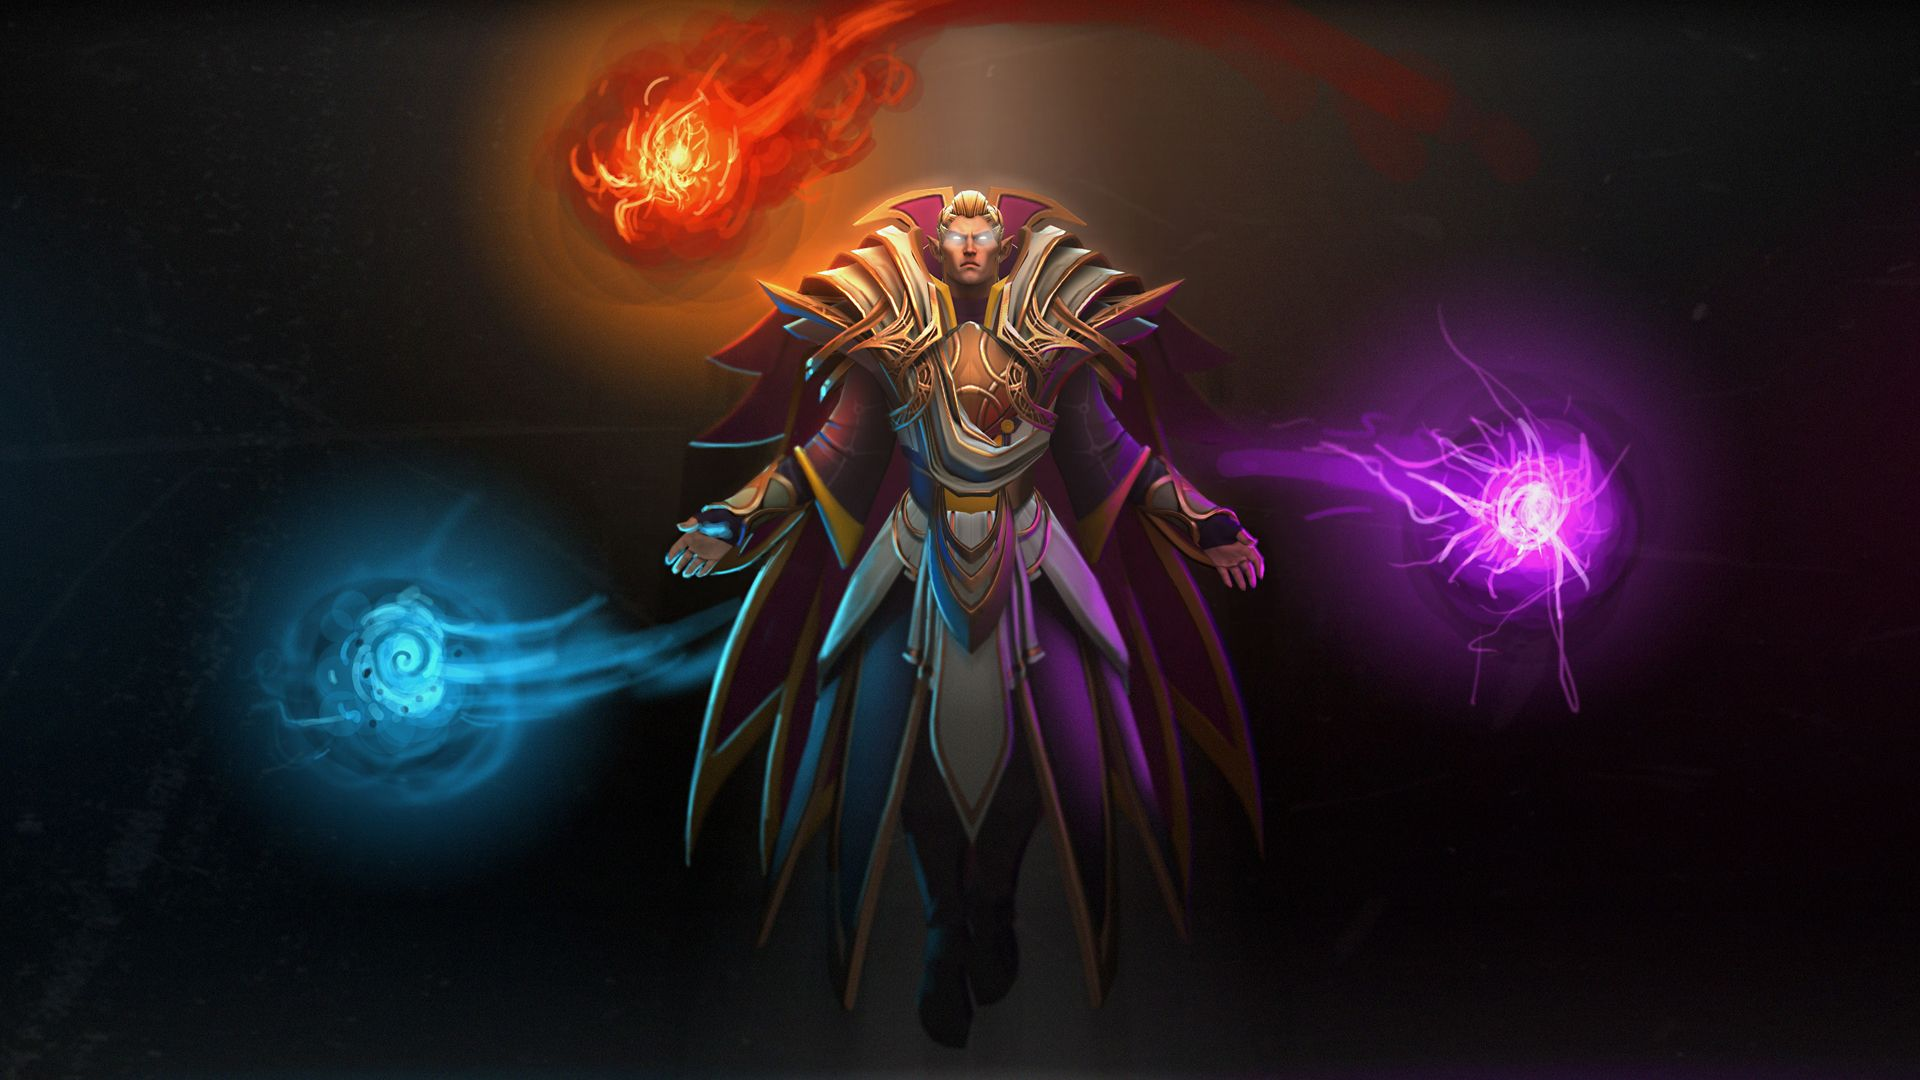 Invoker Dota 2 Wallpaper HD Game Online Images | Tattoo ideas in 2019 | Dota 2 wallpapers hd ...